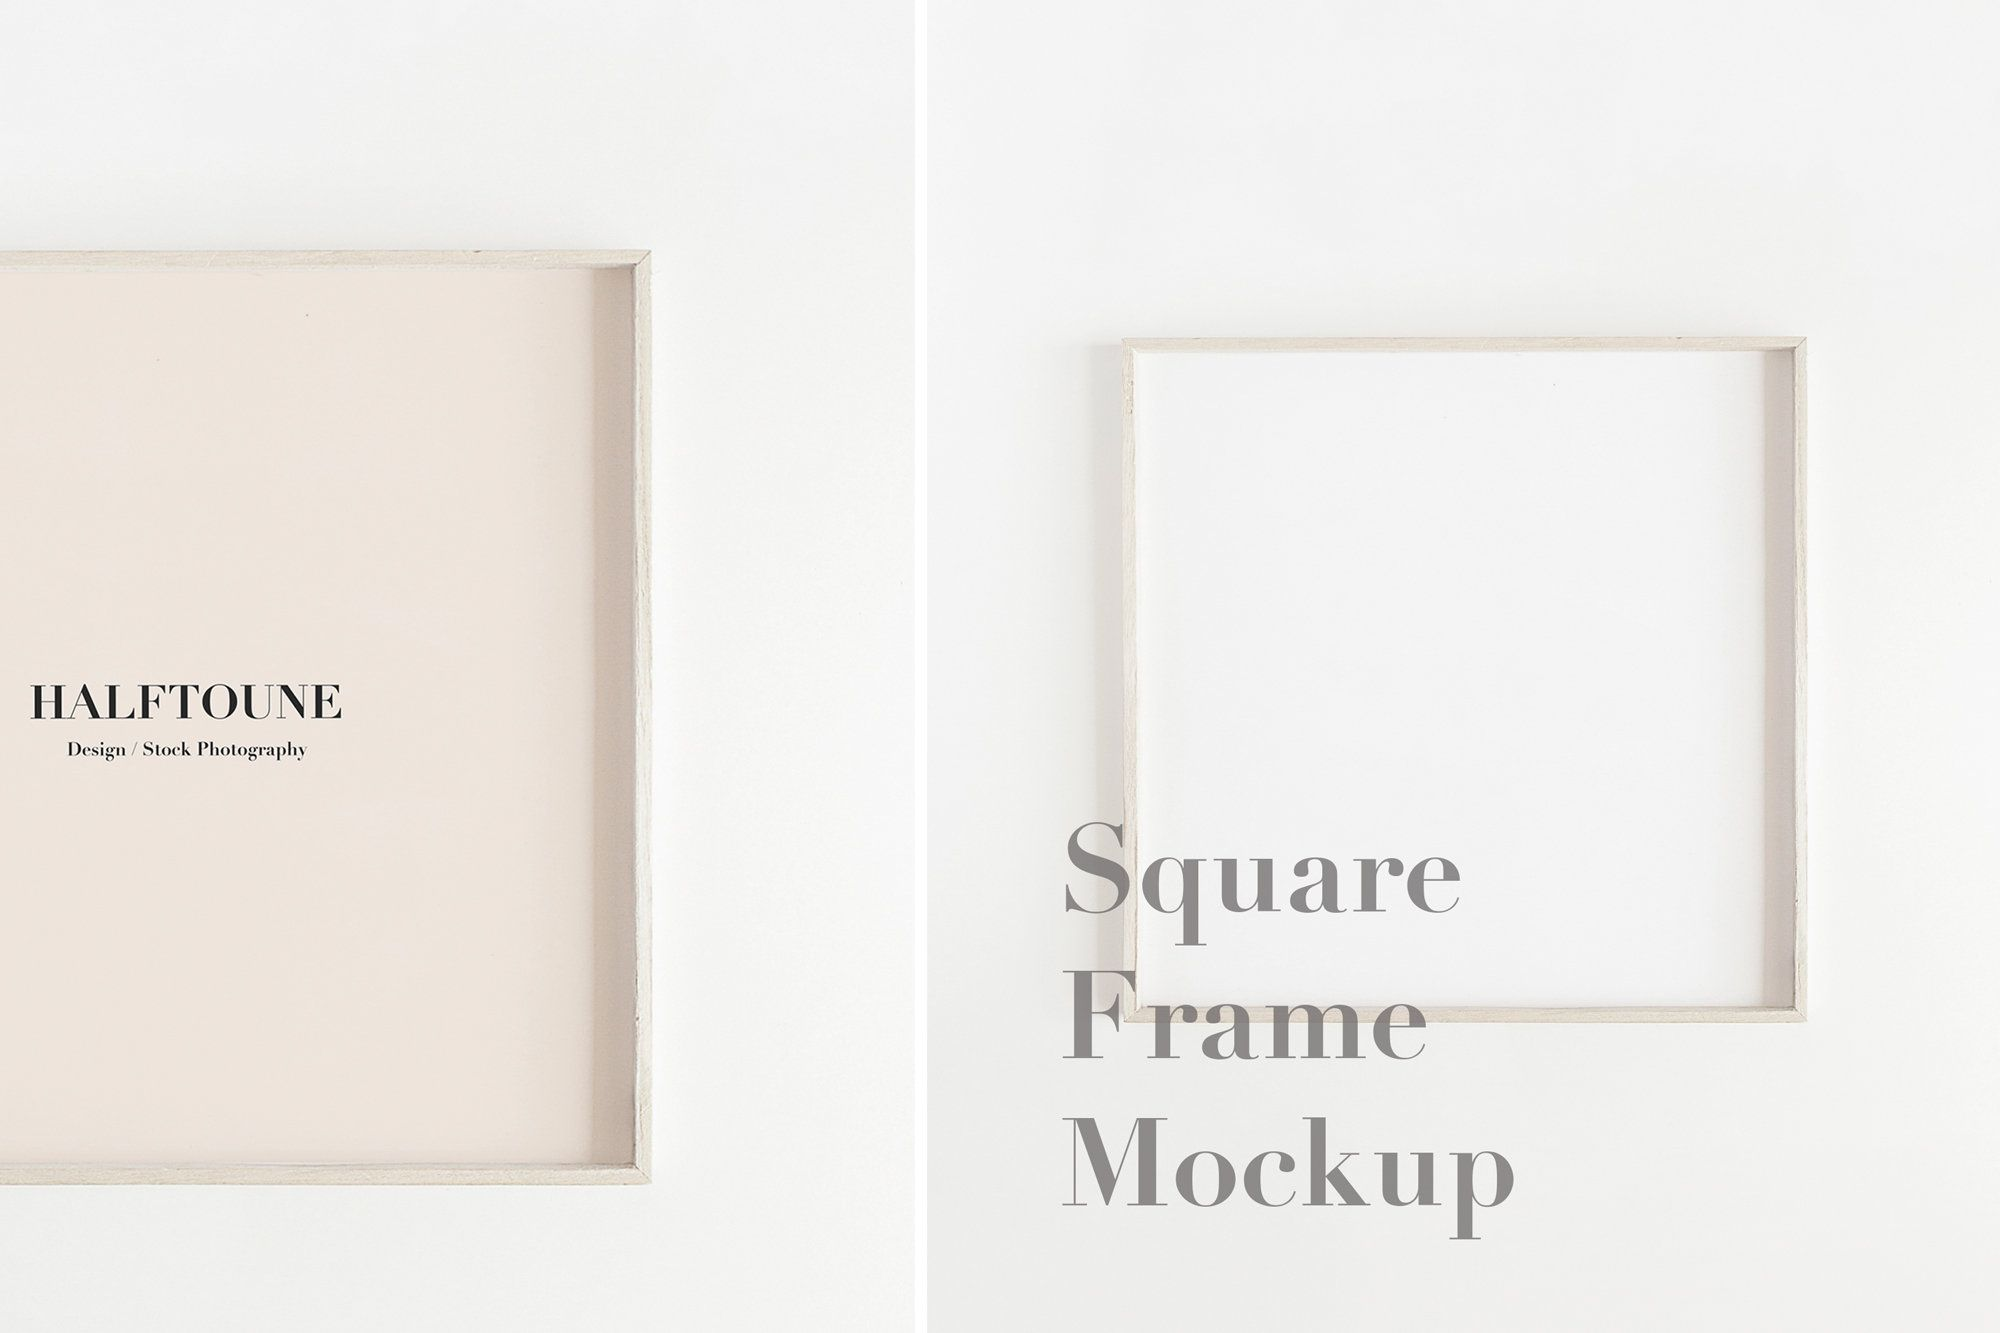 Excited To Share The Latest Addition To My Etsy Shop Frame Mockup Mockup Square Frame Mockup Woode Free Psd Mockups Templates Psd Mockup Template Free Frames